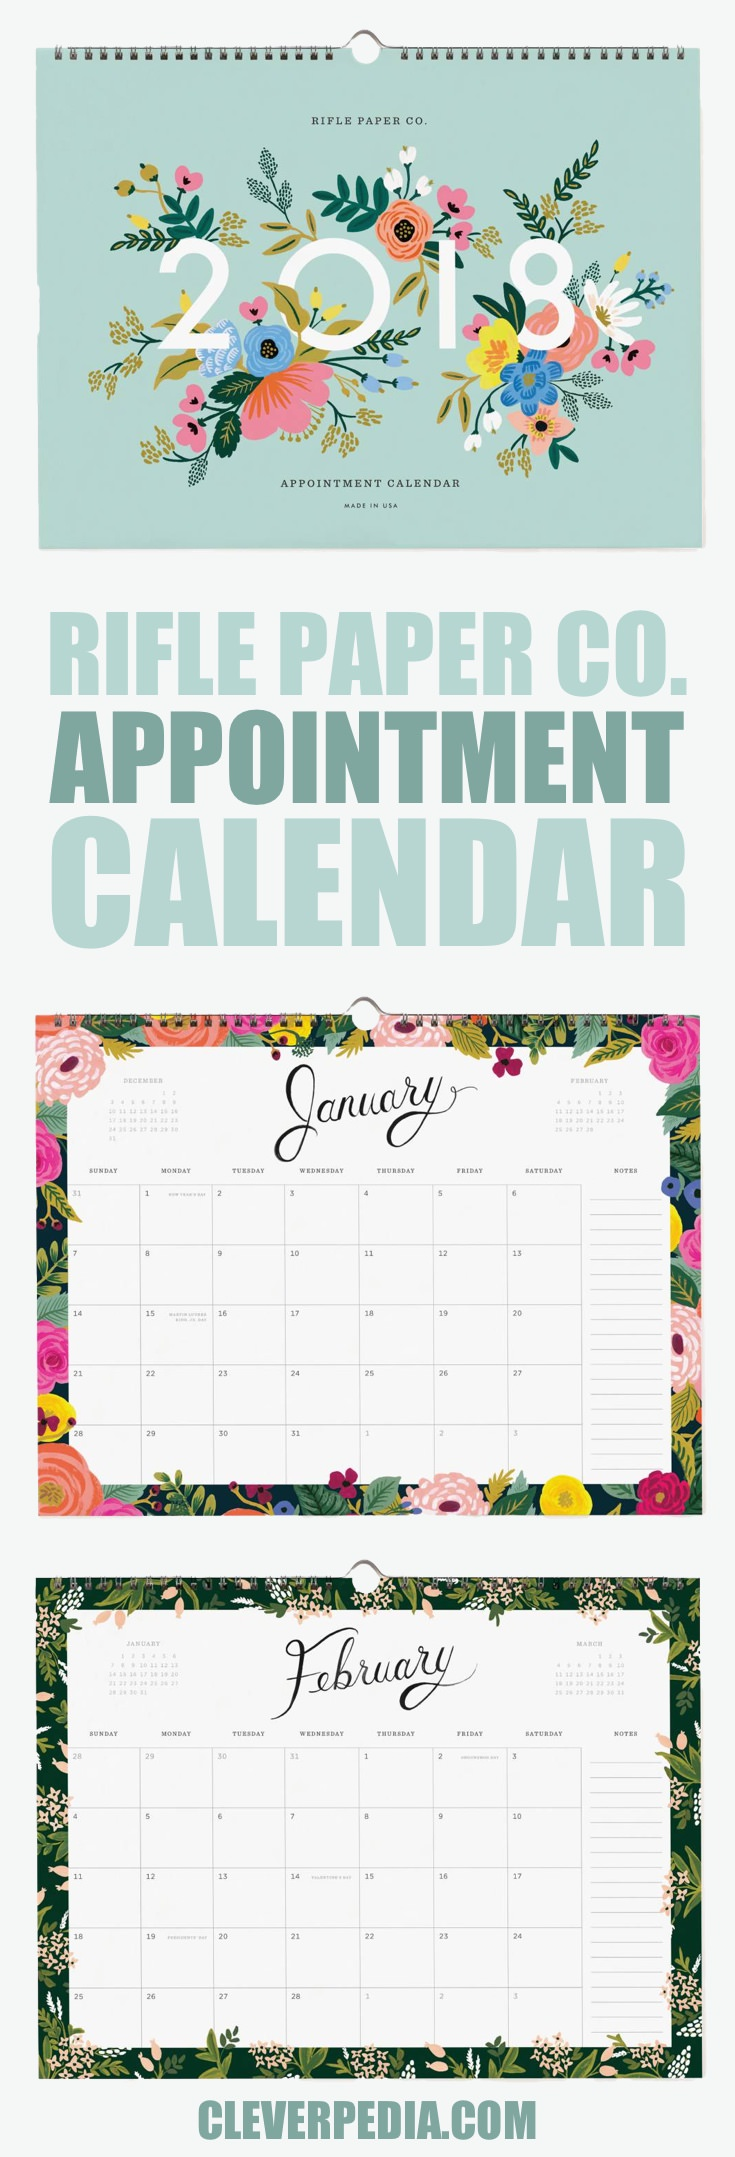 The Rifle Paper Co. 2018 Appointment Calendar has a dozen pages of calendar squares with floral borders, ready to fill with your appointments.